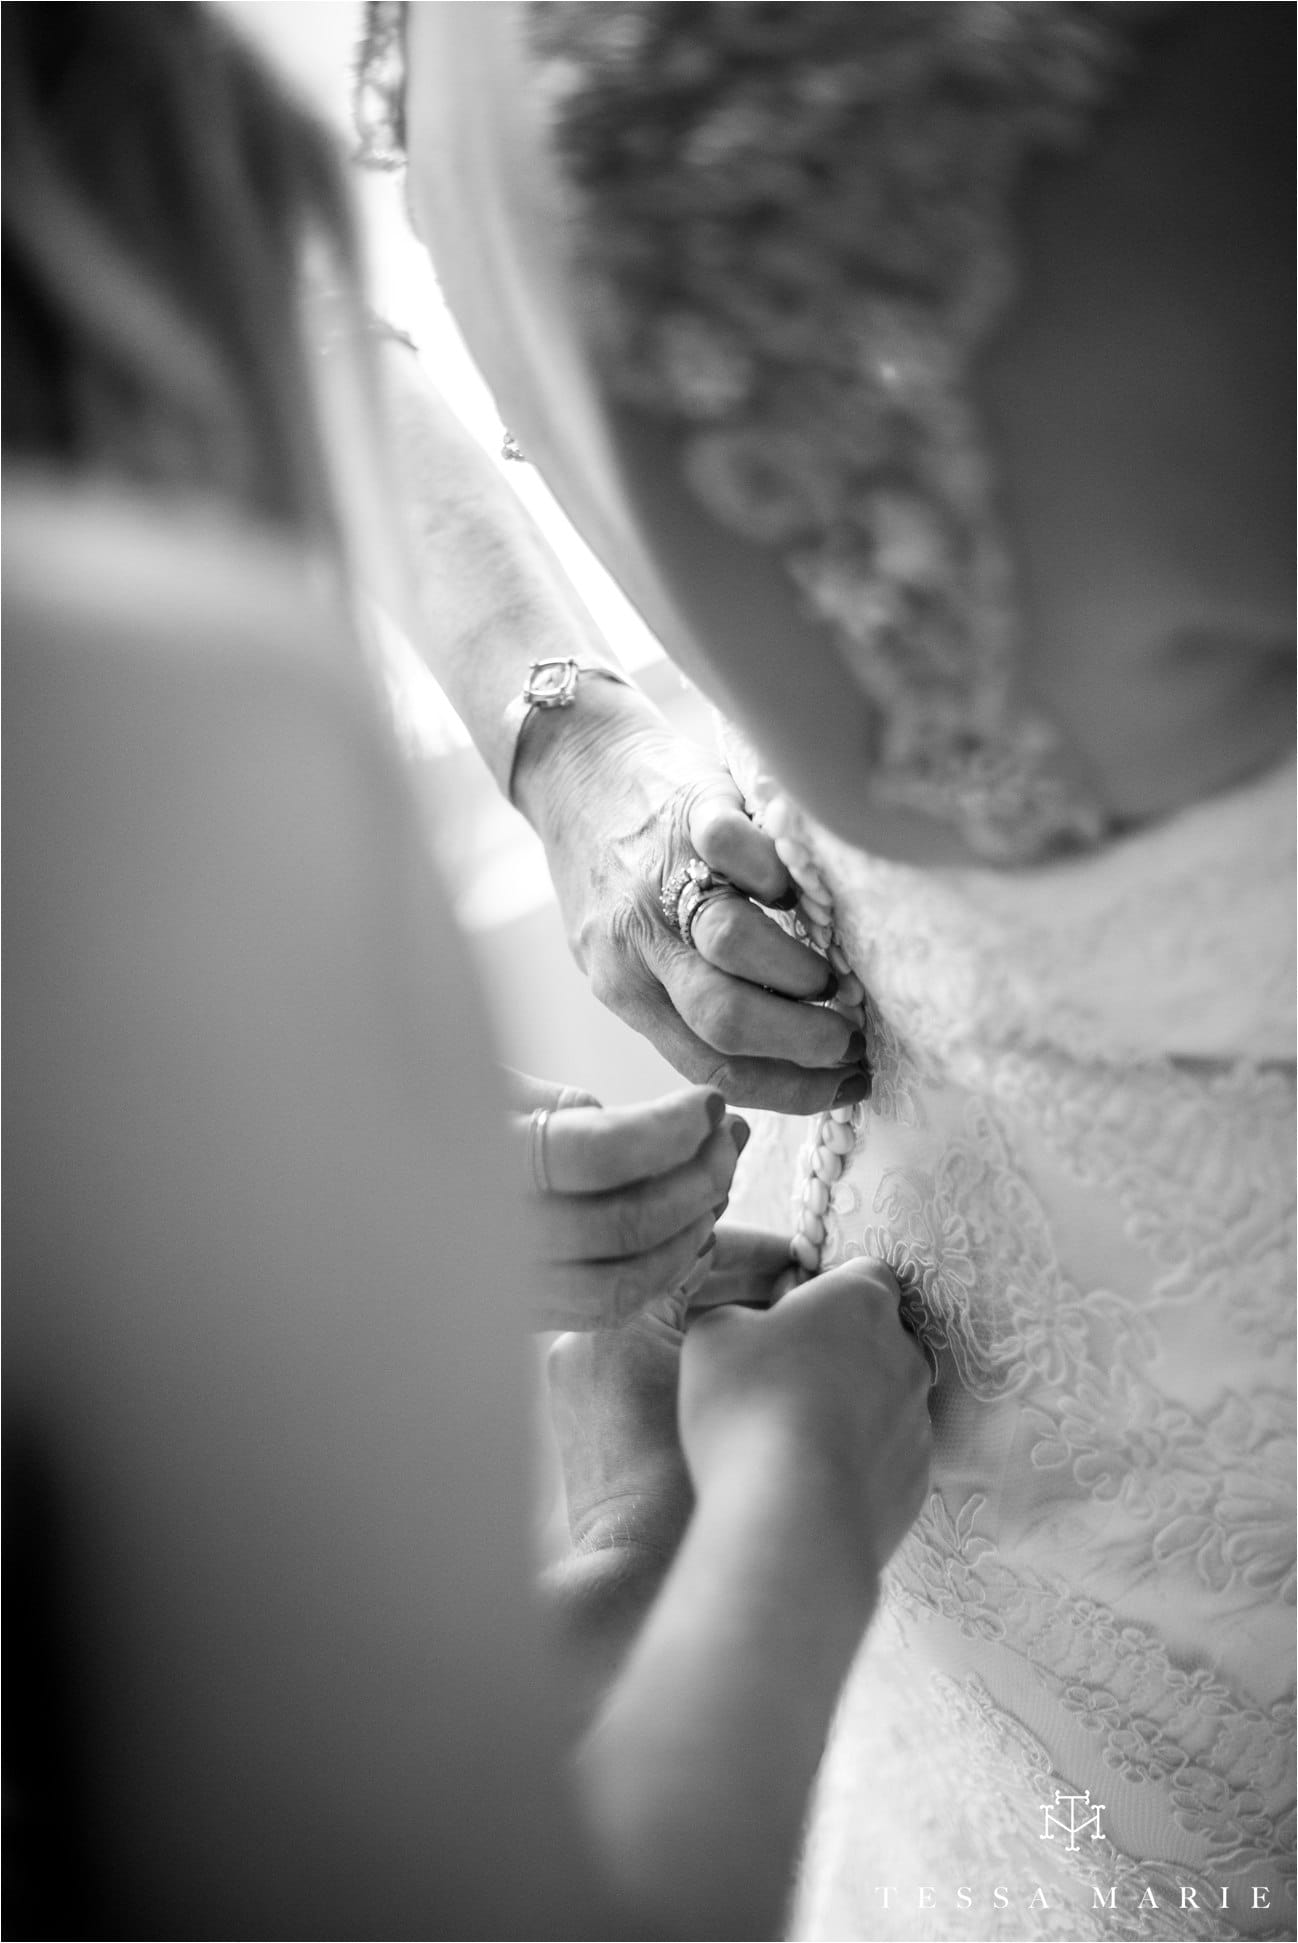 tessa_marie_brickyard_marietta_new_years_wedding_pictures_candid_emotional_wedding_portraits_0028